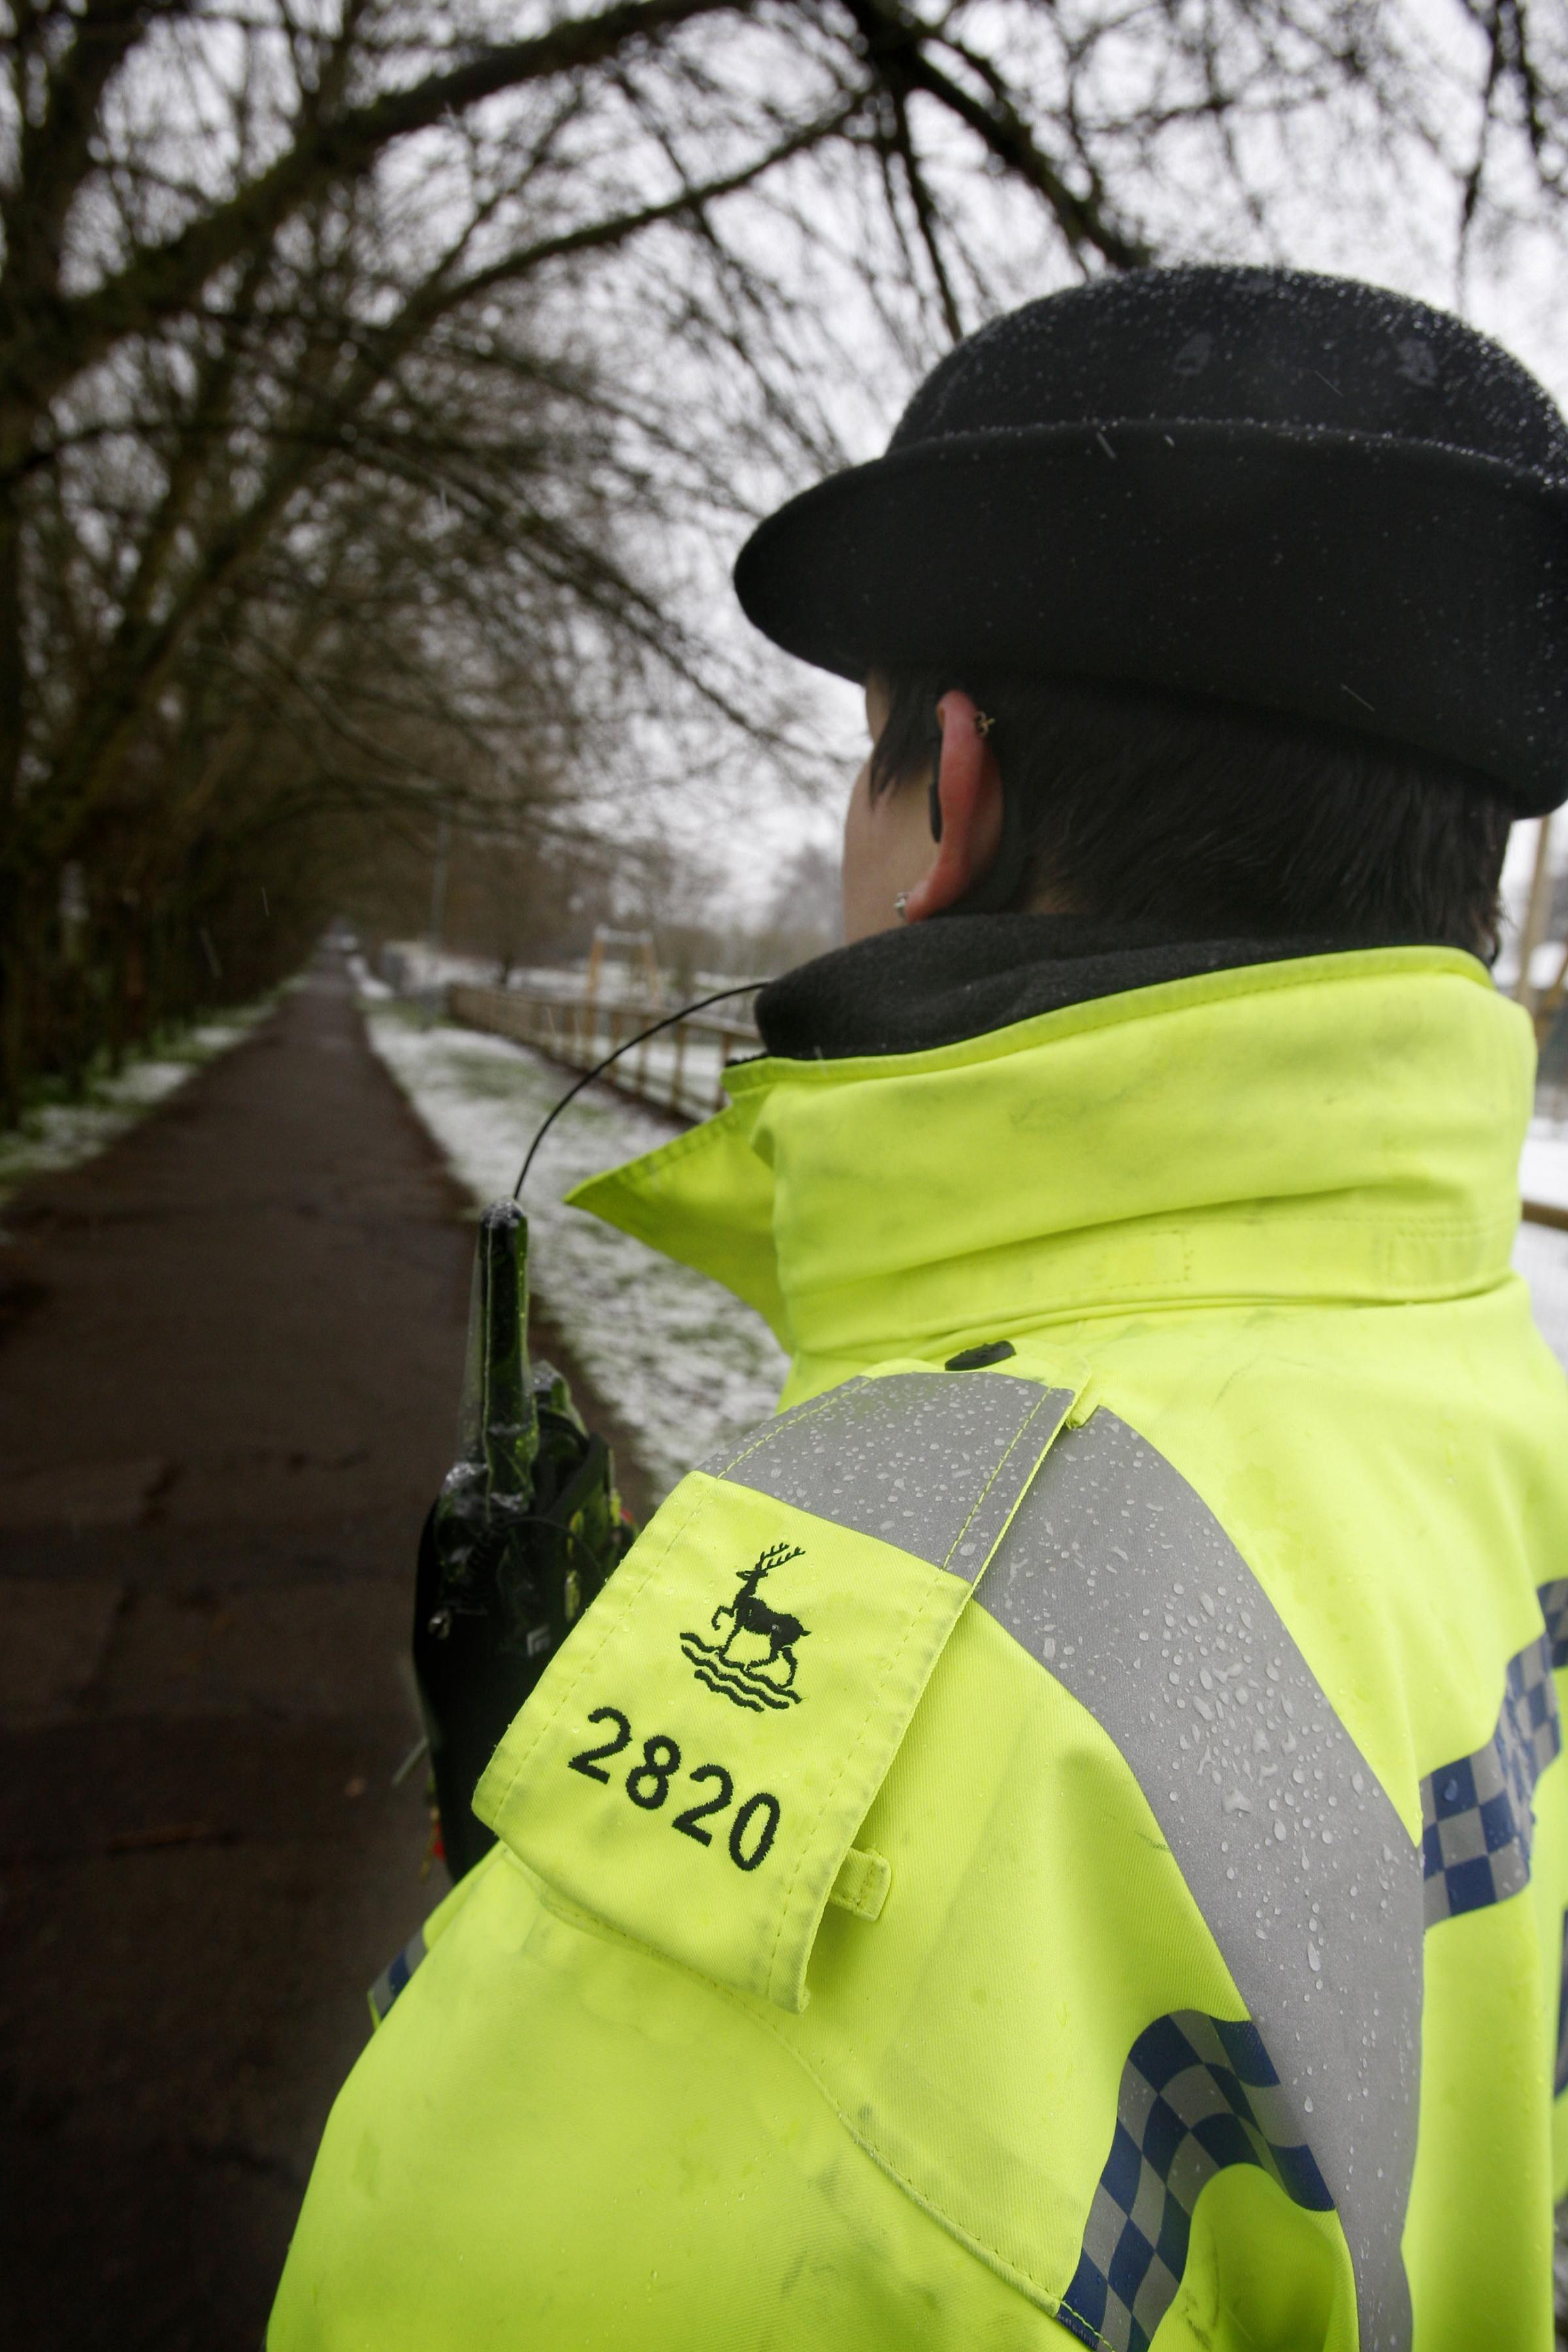 Crime levels down in Bushey and Radlett, figures reveal